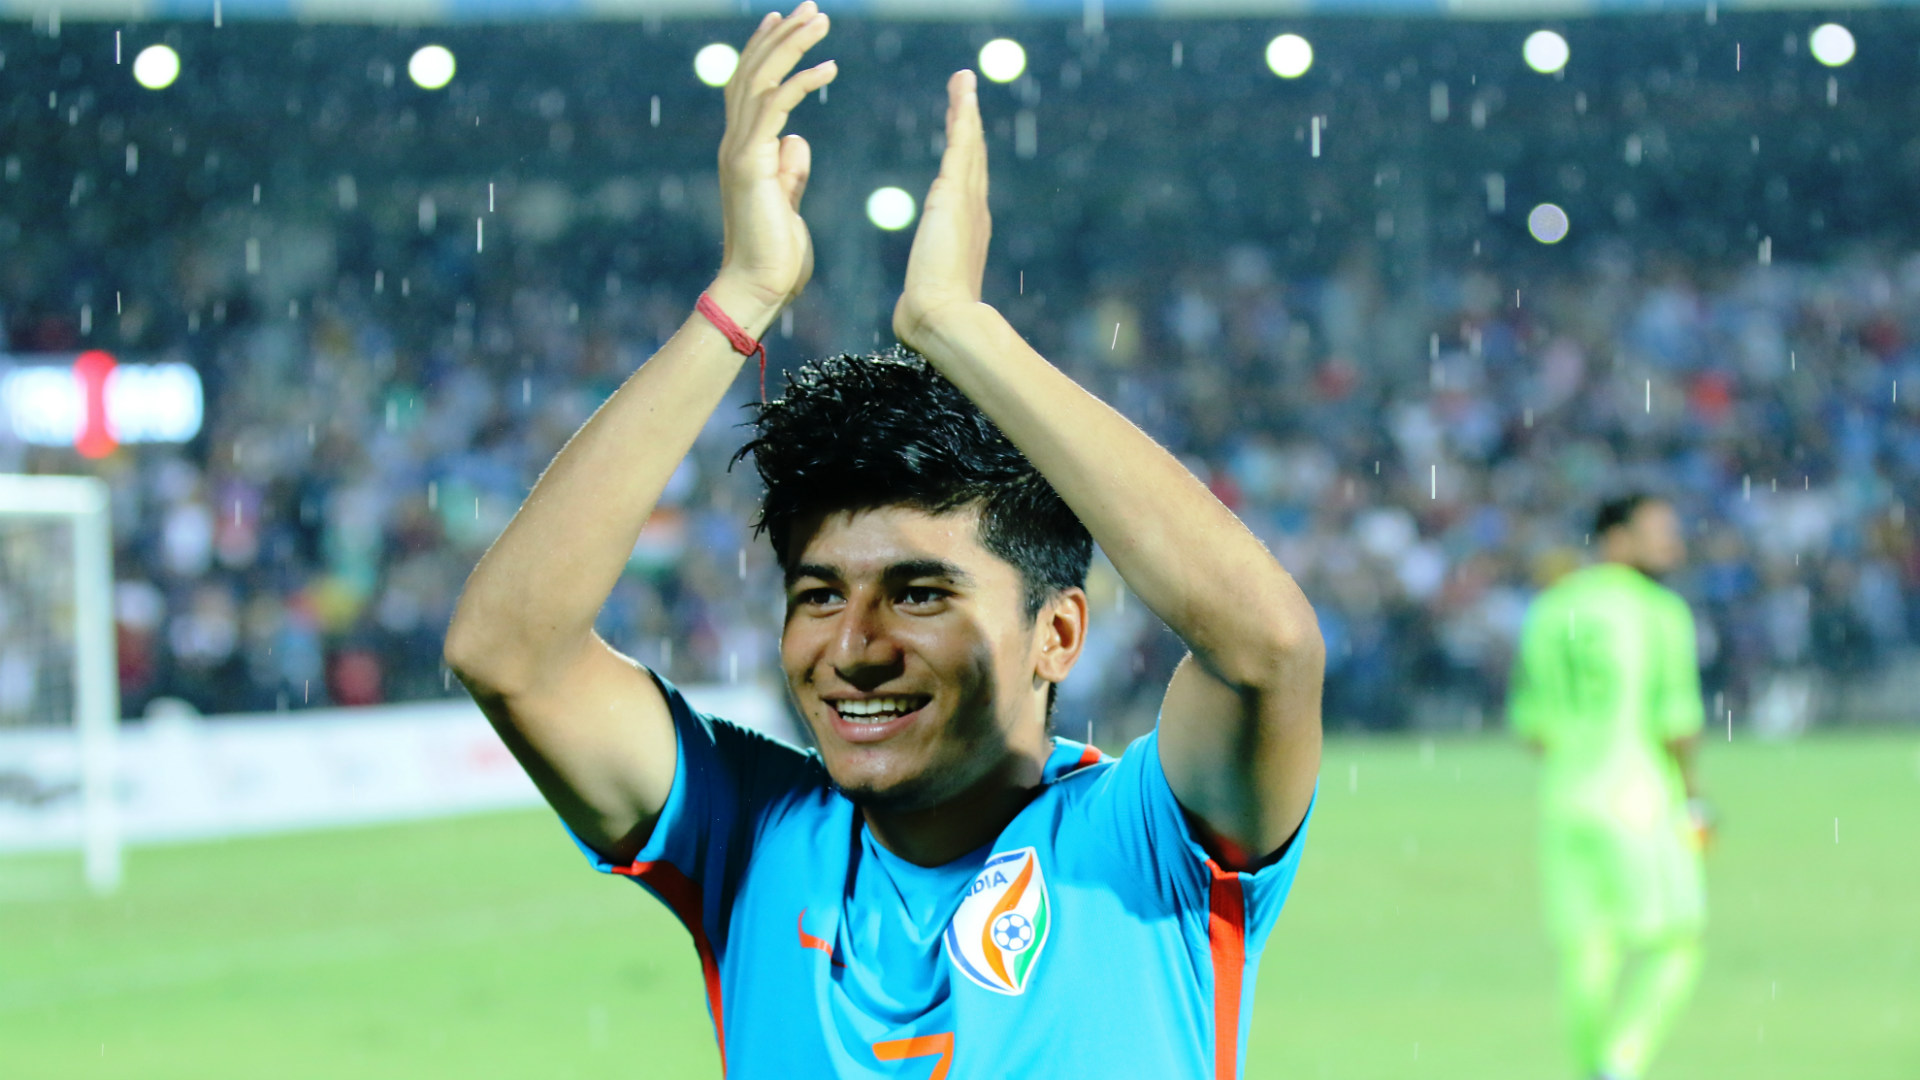 Anirudh Thapa - Football in Dehradun needs more infrastructure and coaches